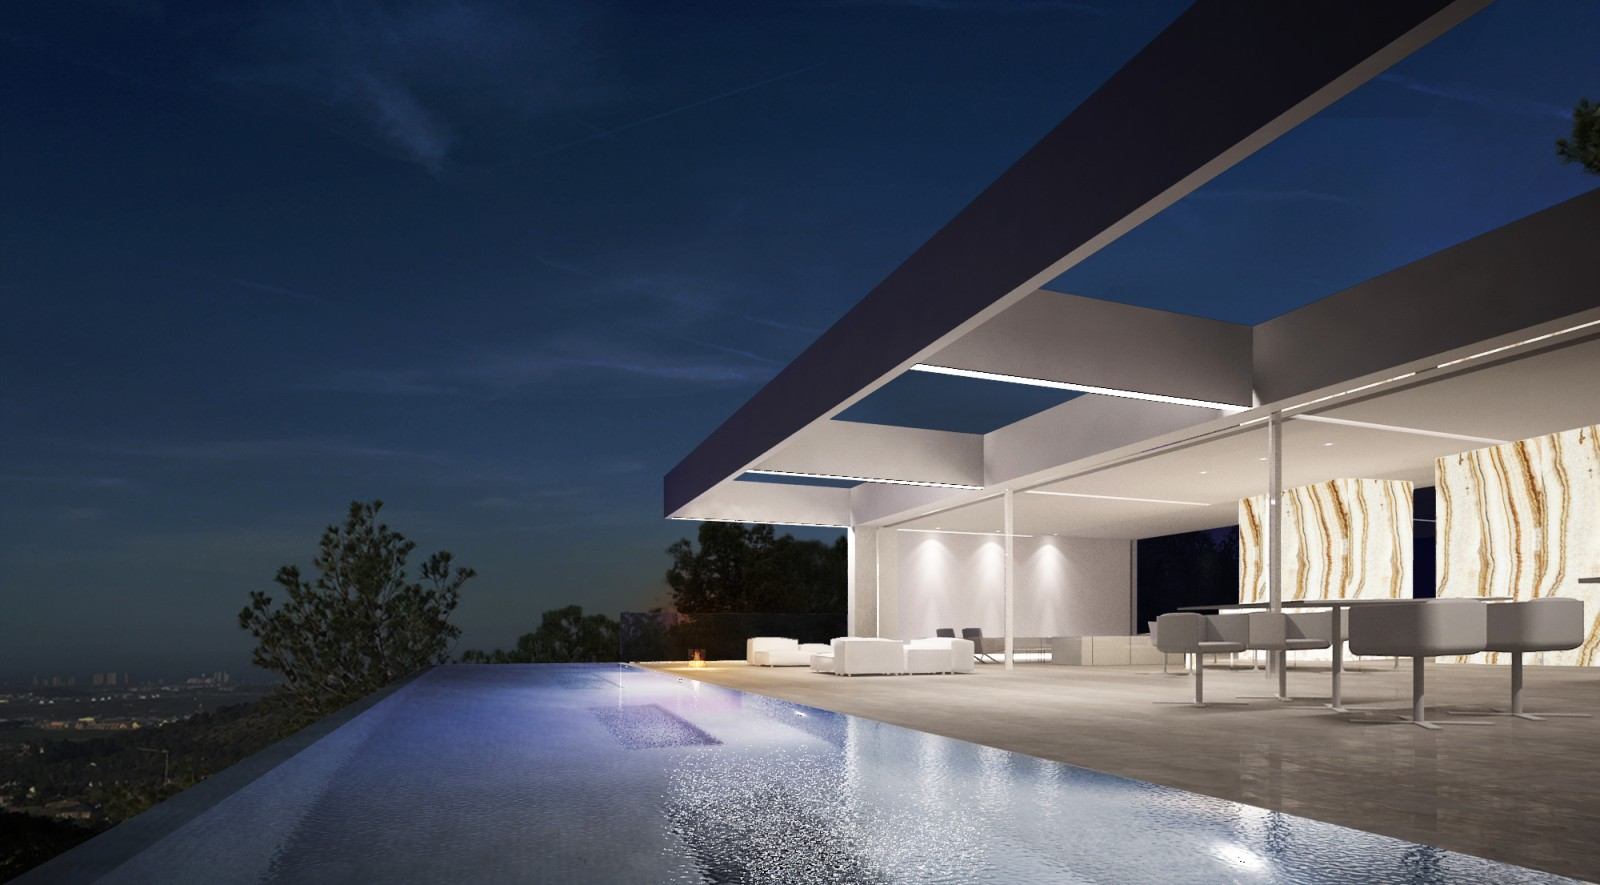 House of the quarry by ramon esteve estudio - Ramon esteve estudio ...